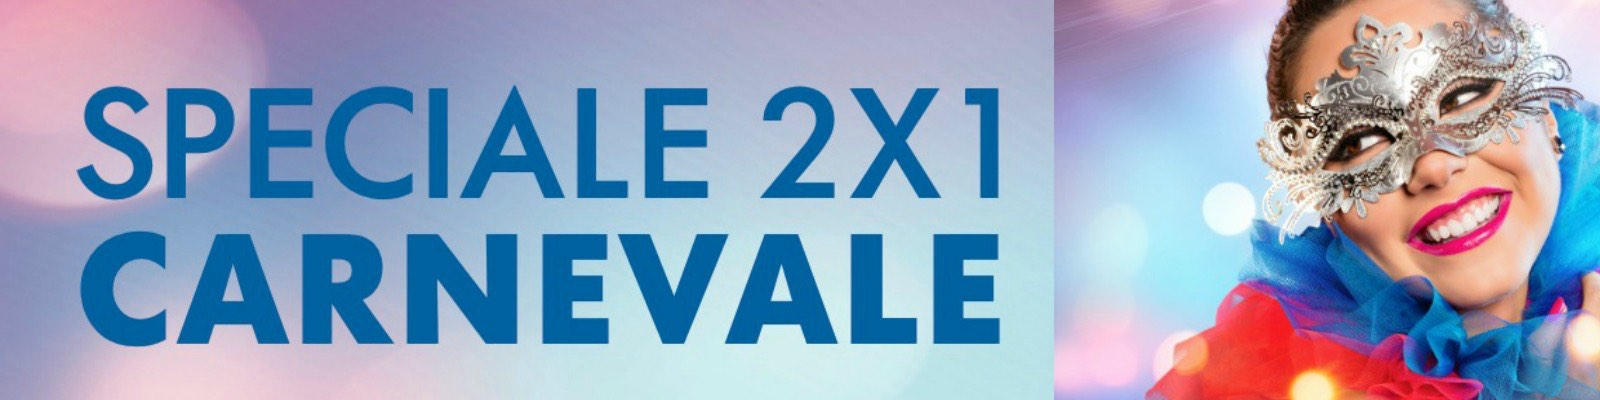 Carnevale Speciale 2x1